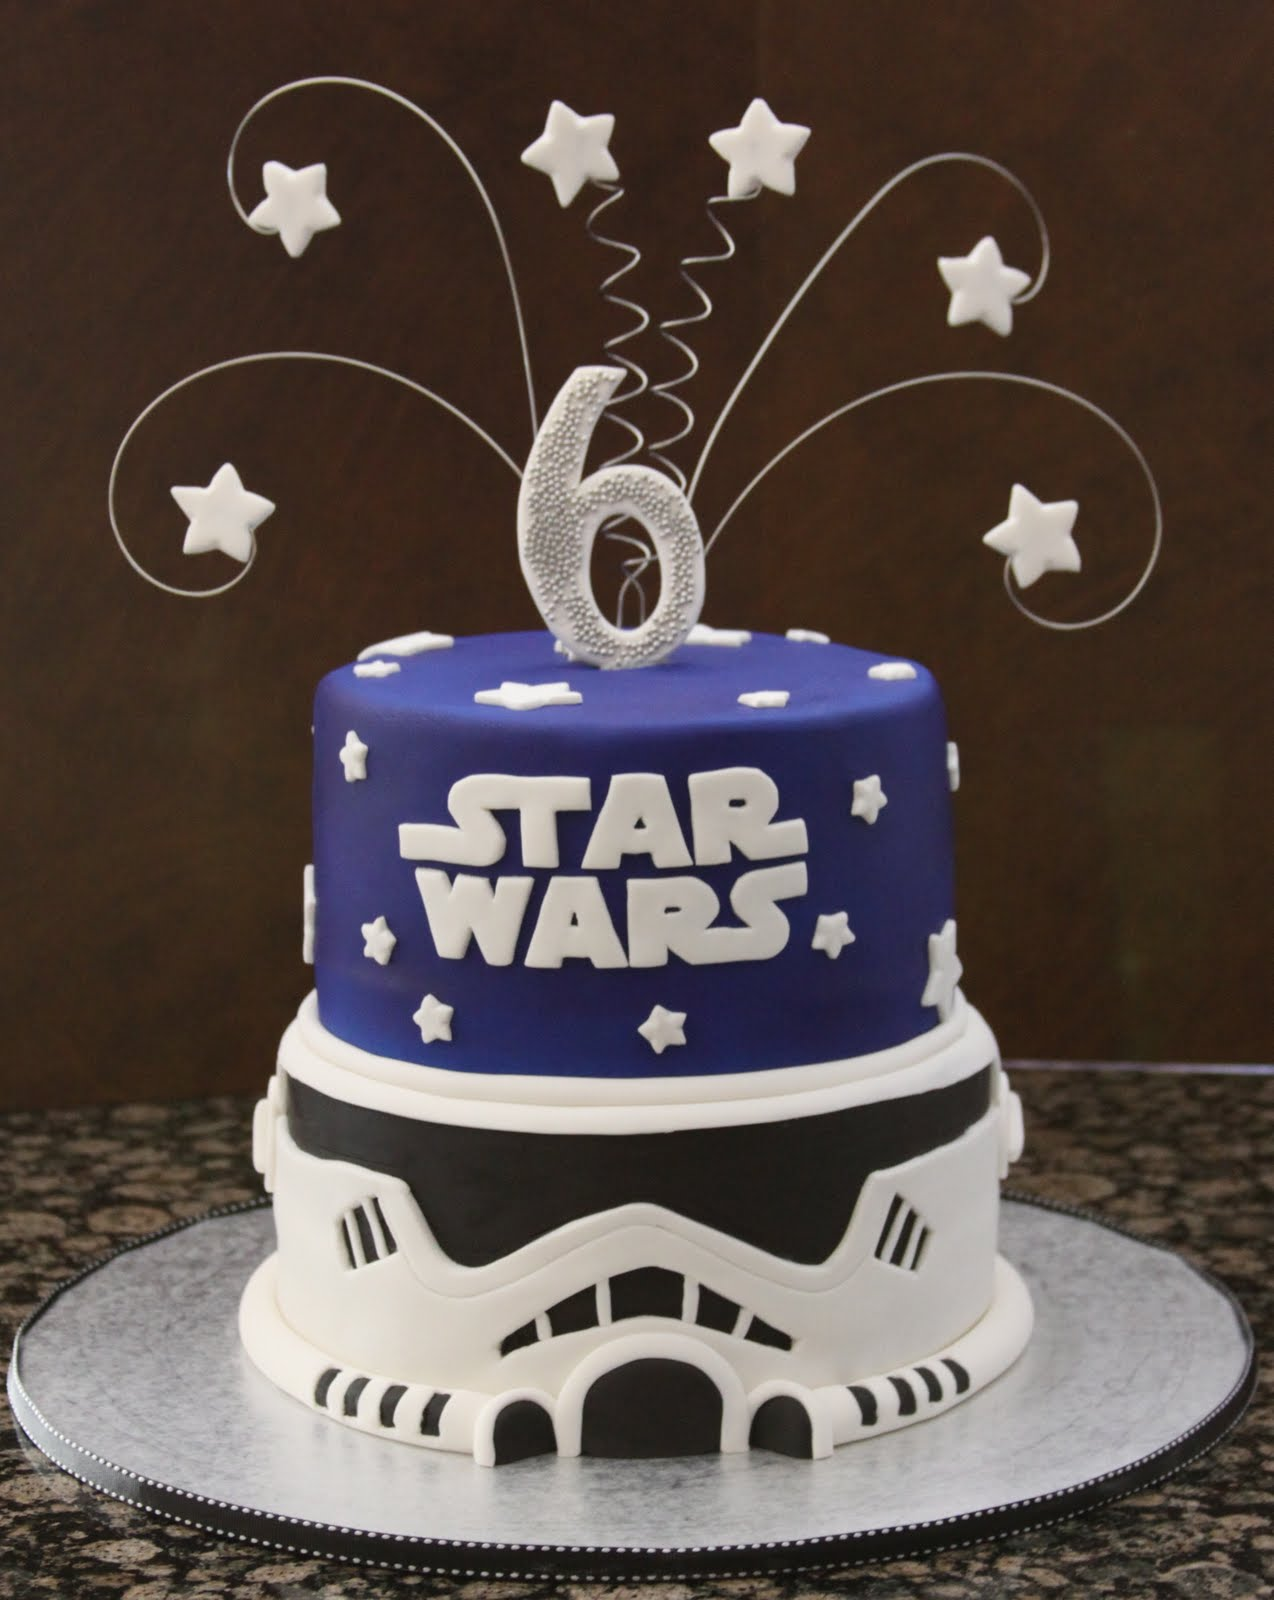 Images Of Star Wars Cake : .: August 2011